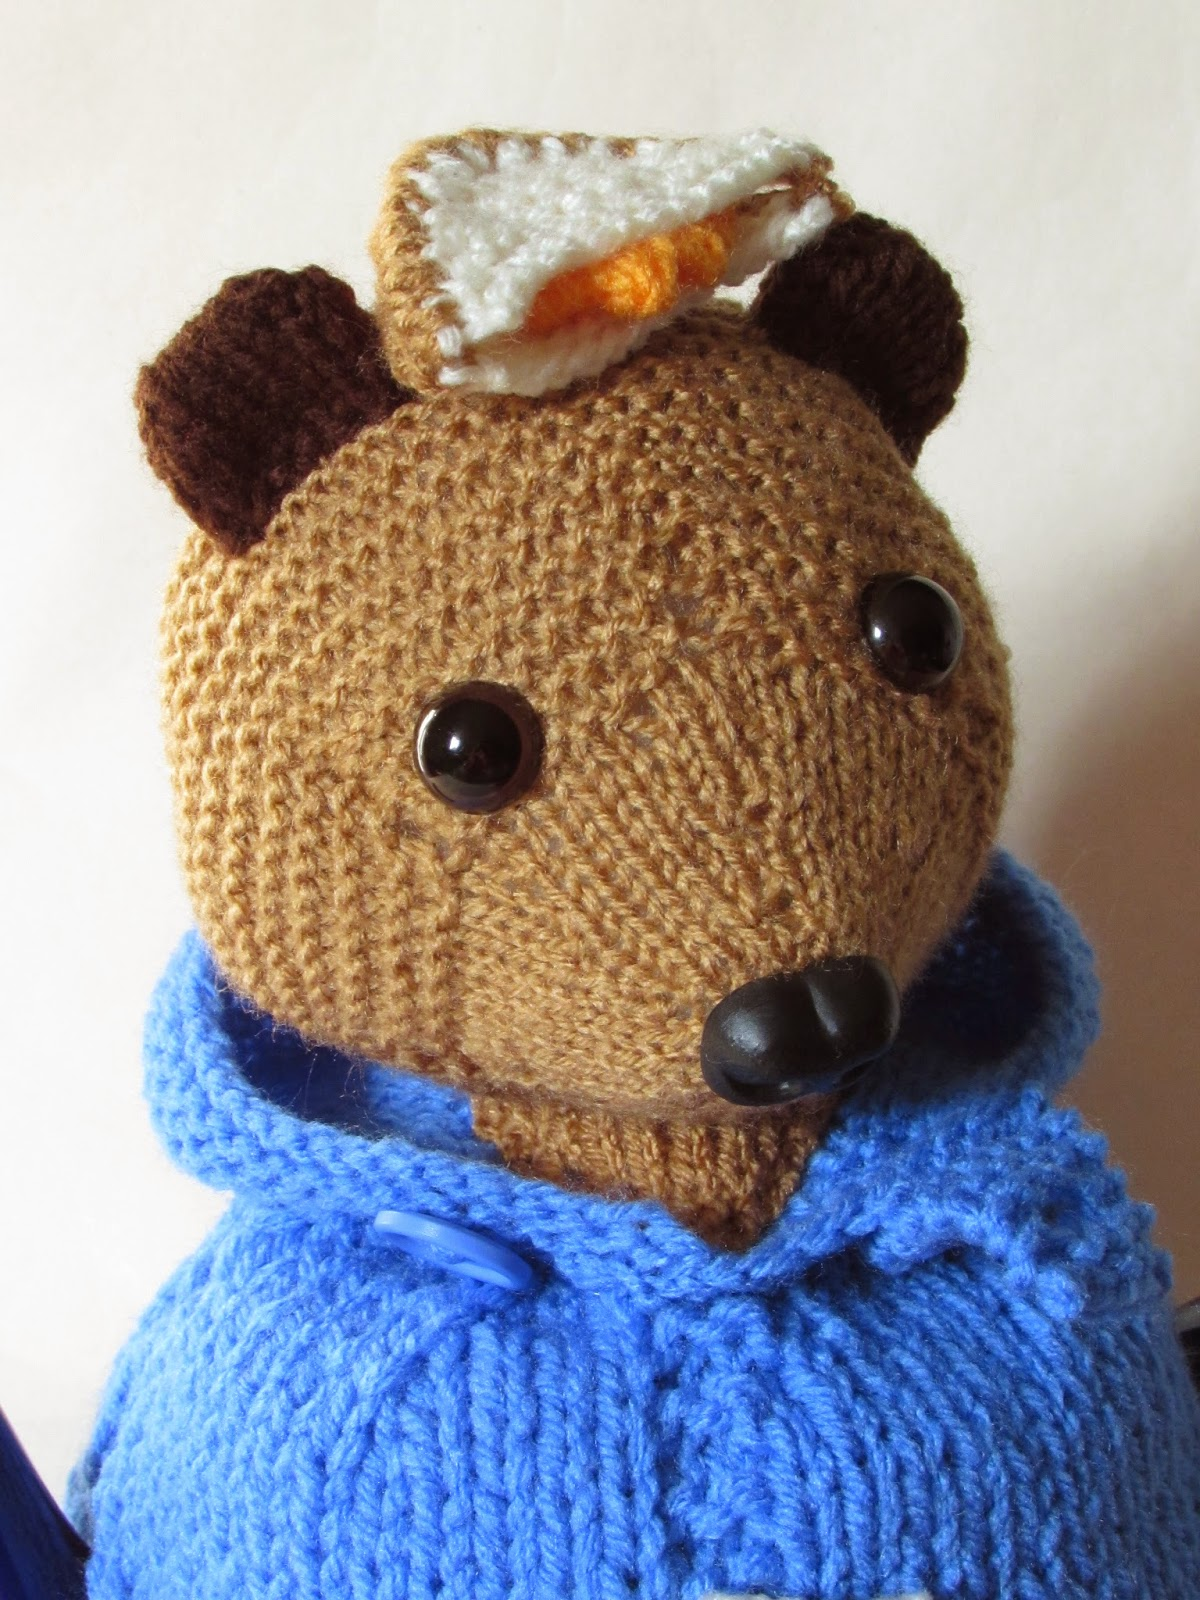 Paddington Bear tea cosy knitting pattern for sale from TeaCosyFolk